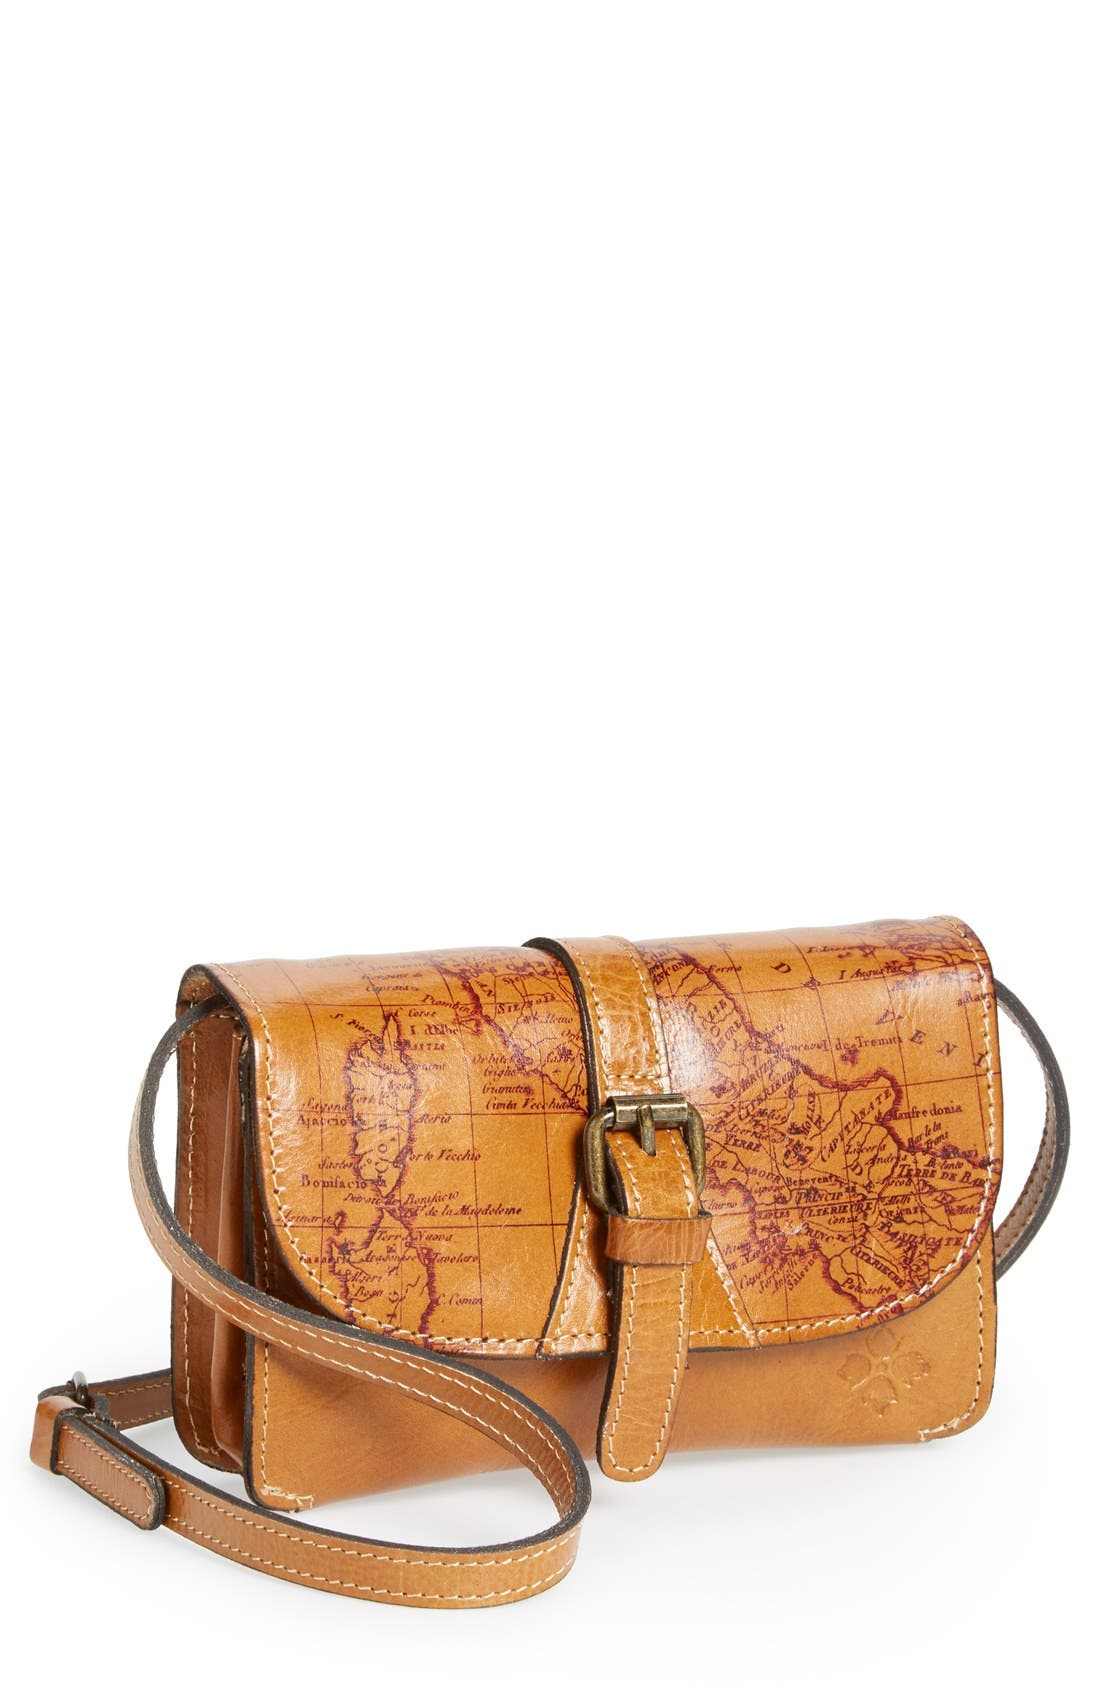 Main Image - Patricia Nash 'Torri' Leather Crossbody Bag